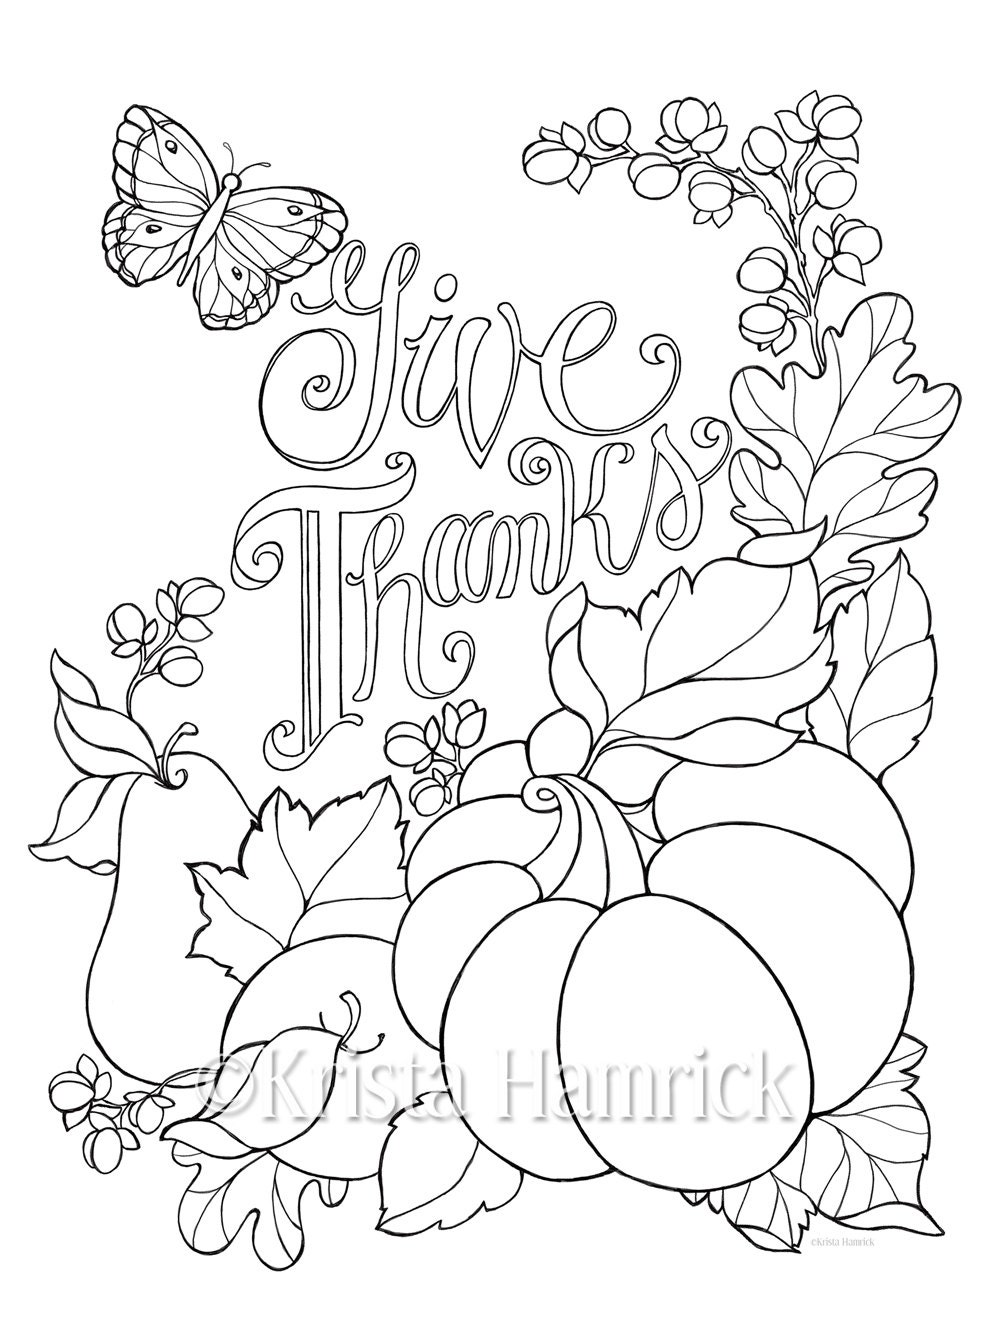 Give Thanks coloring page in two sizes: 8.5X11 and Bible